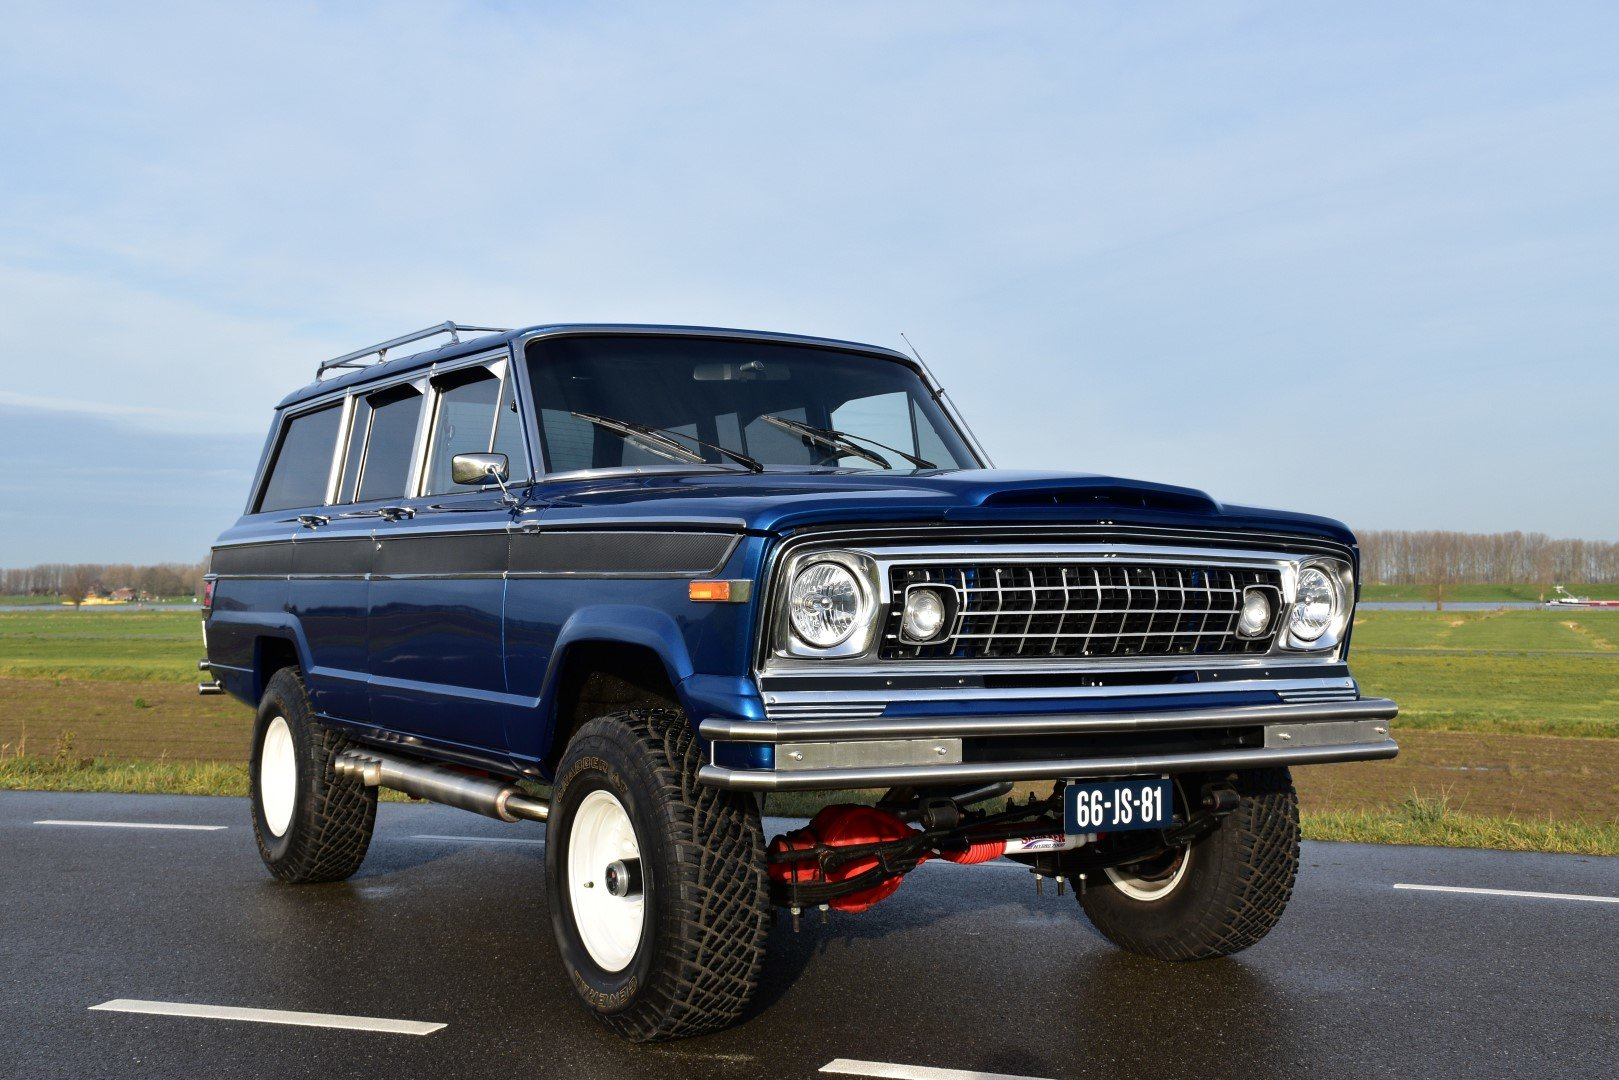 1976 Jeep Wagoneer 5.6 liter V8 For Sale (picture 1 of 6)